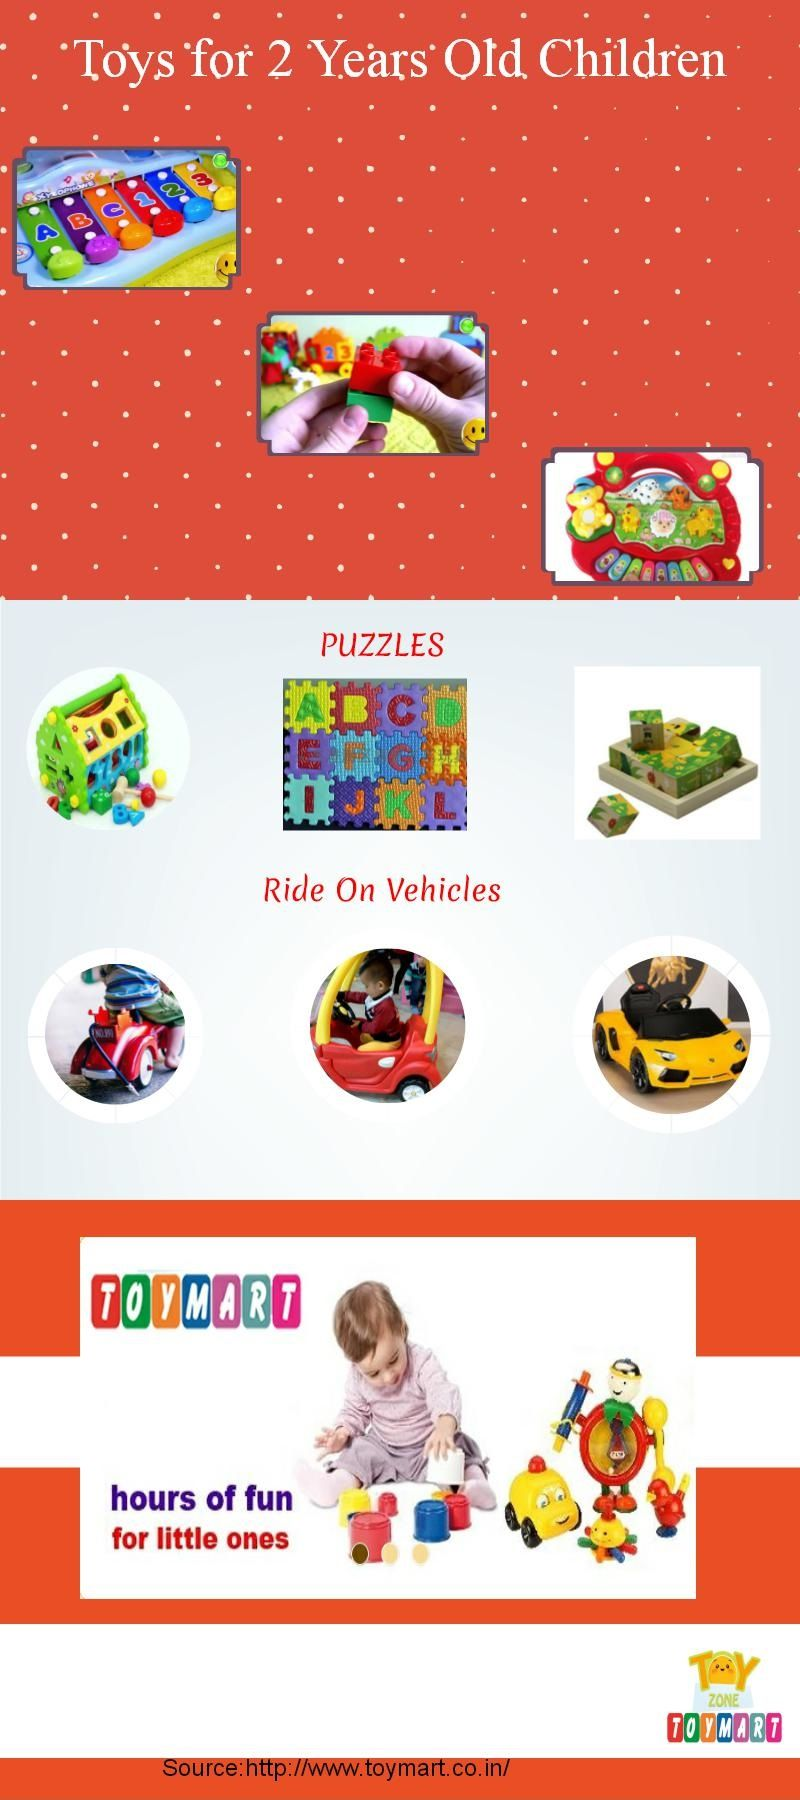 get amazing toys for your 2 year old from toy mart therange includes puzzles